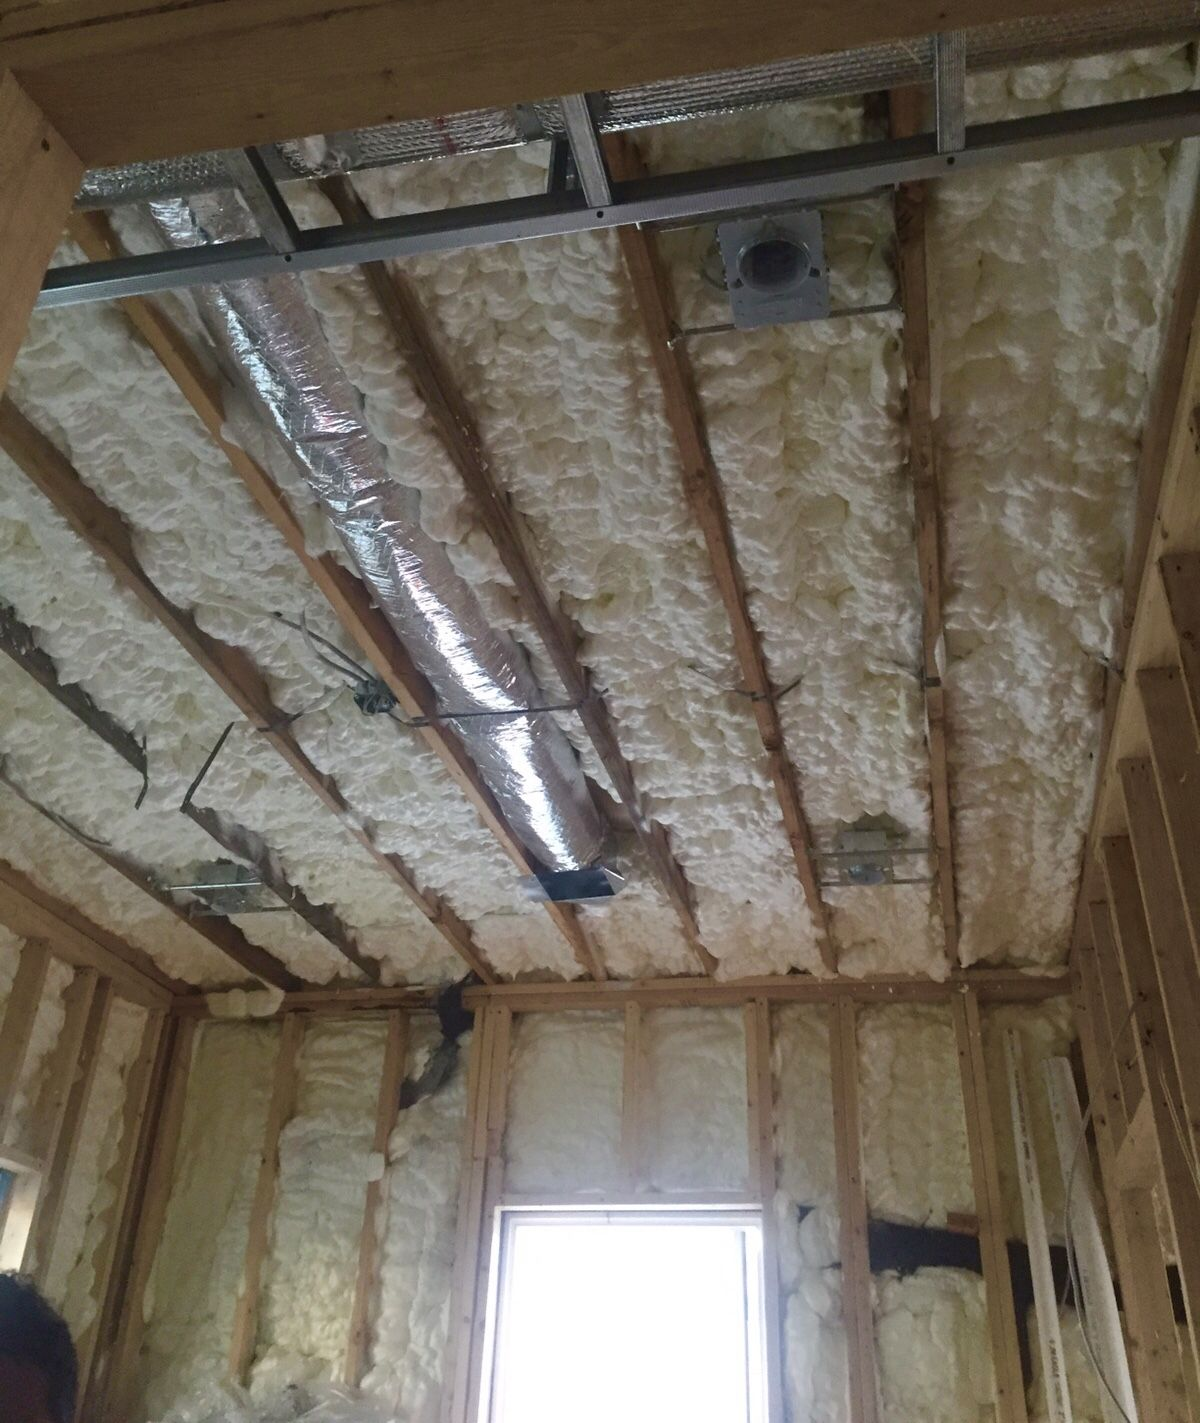 Wall ceiling spray foam insulation will save you up to 50 on your wall ceiling spray foam insulation will save you up to 50 on your energy costs solutioingenieria